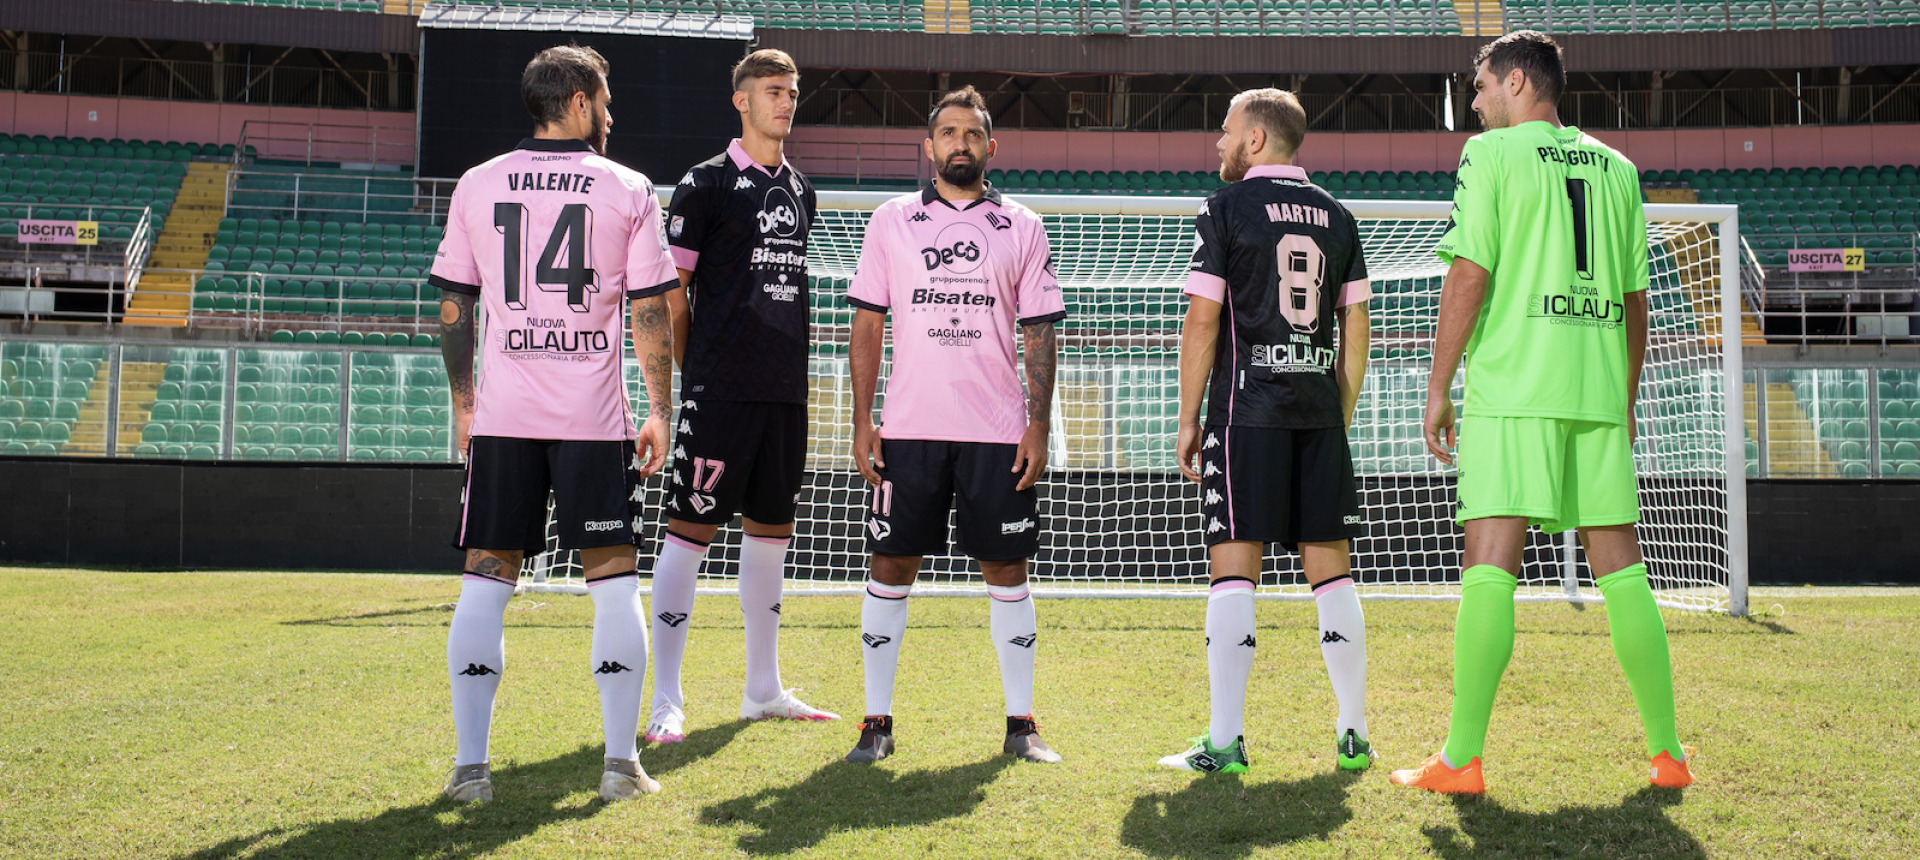 PALERMO REVEALS HOME AND AWAY KIT FROM KAPPA FOR THE 2020-2021 SEASON